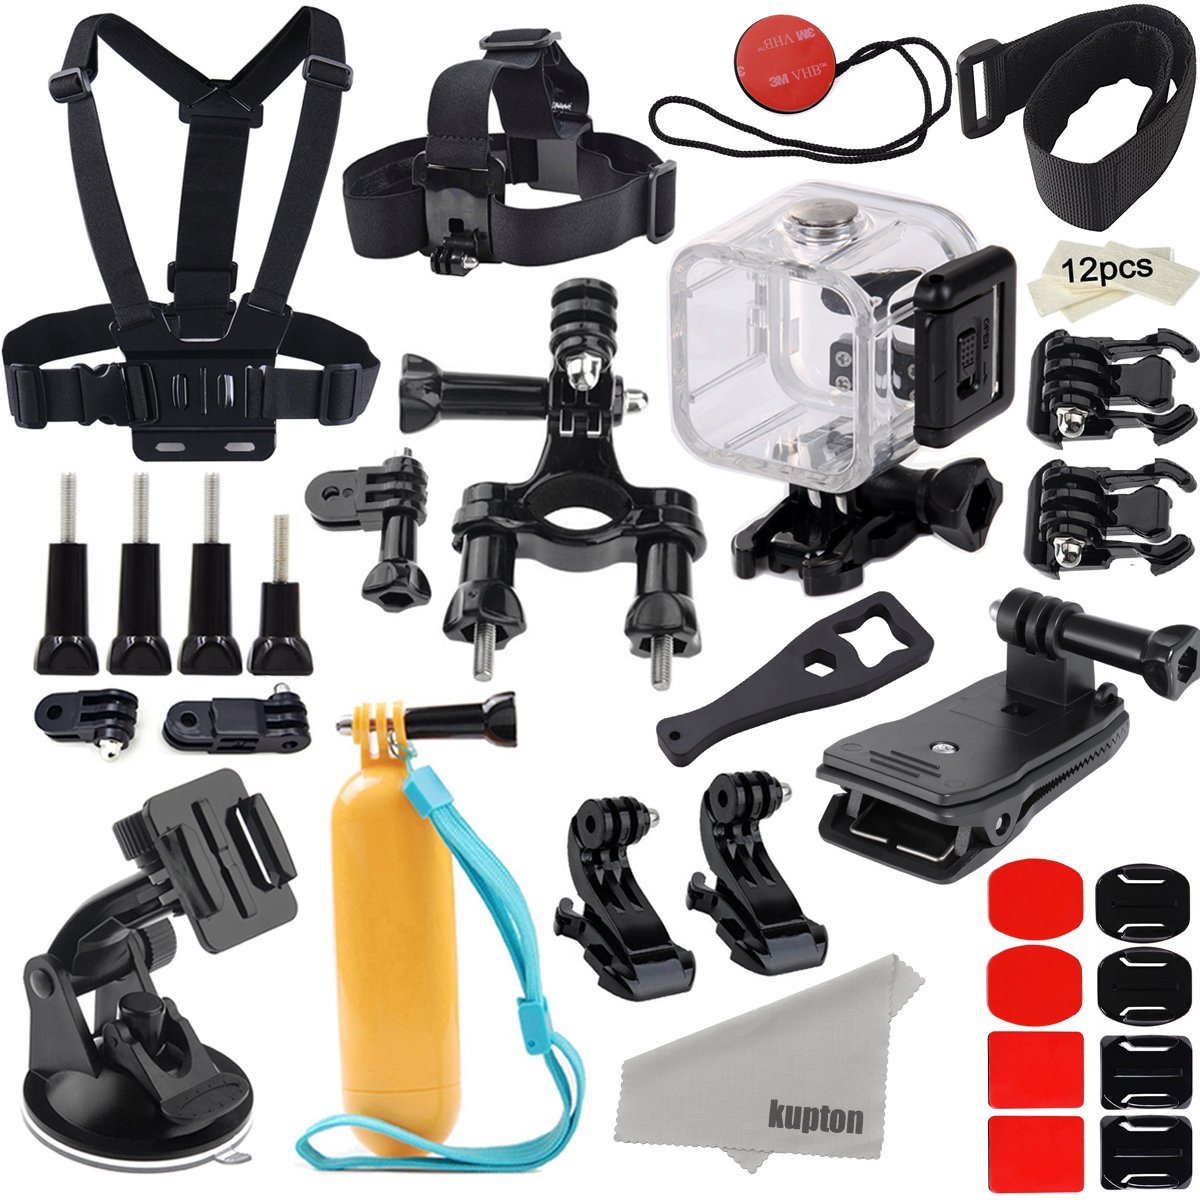 Kupton Accessories for GoPro Hero 5 Session/Hero Session Bundle Action Camcorder Camera Accessories Mounts Waterproof Housing Case Chest Head Bike Car Backpack Clip Mount